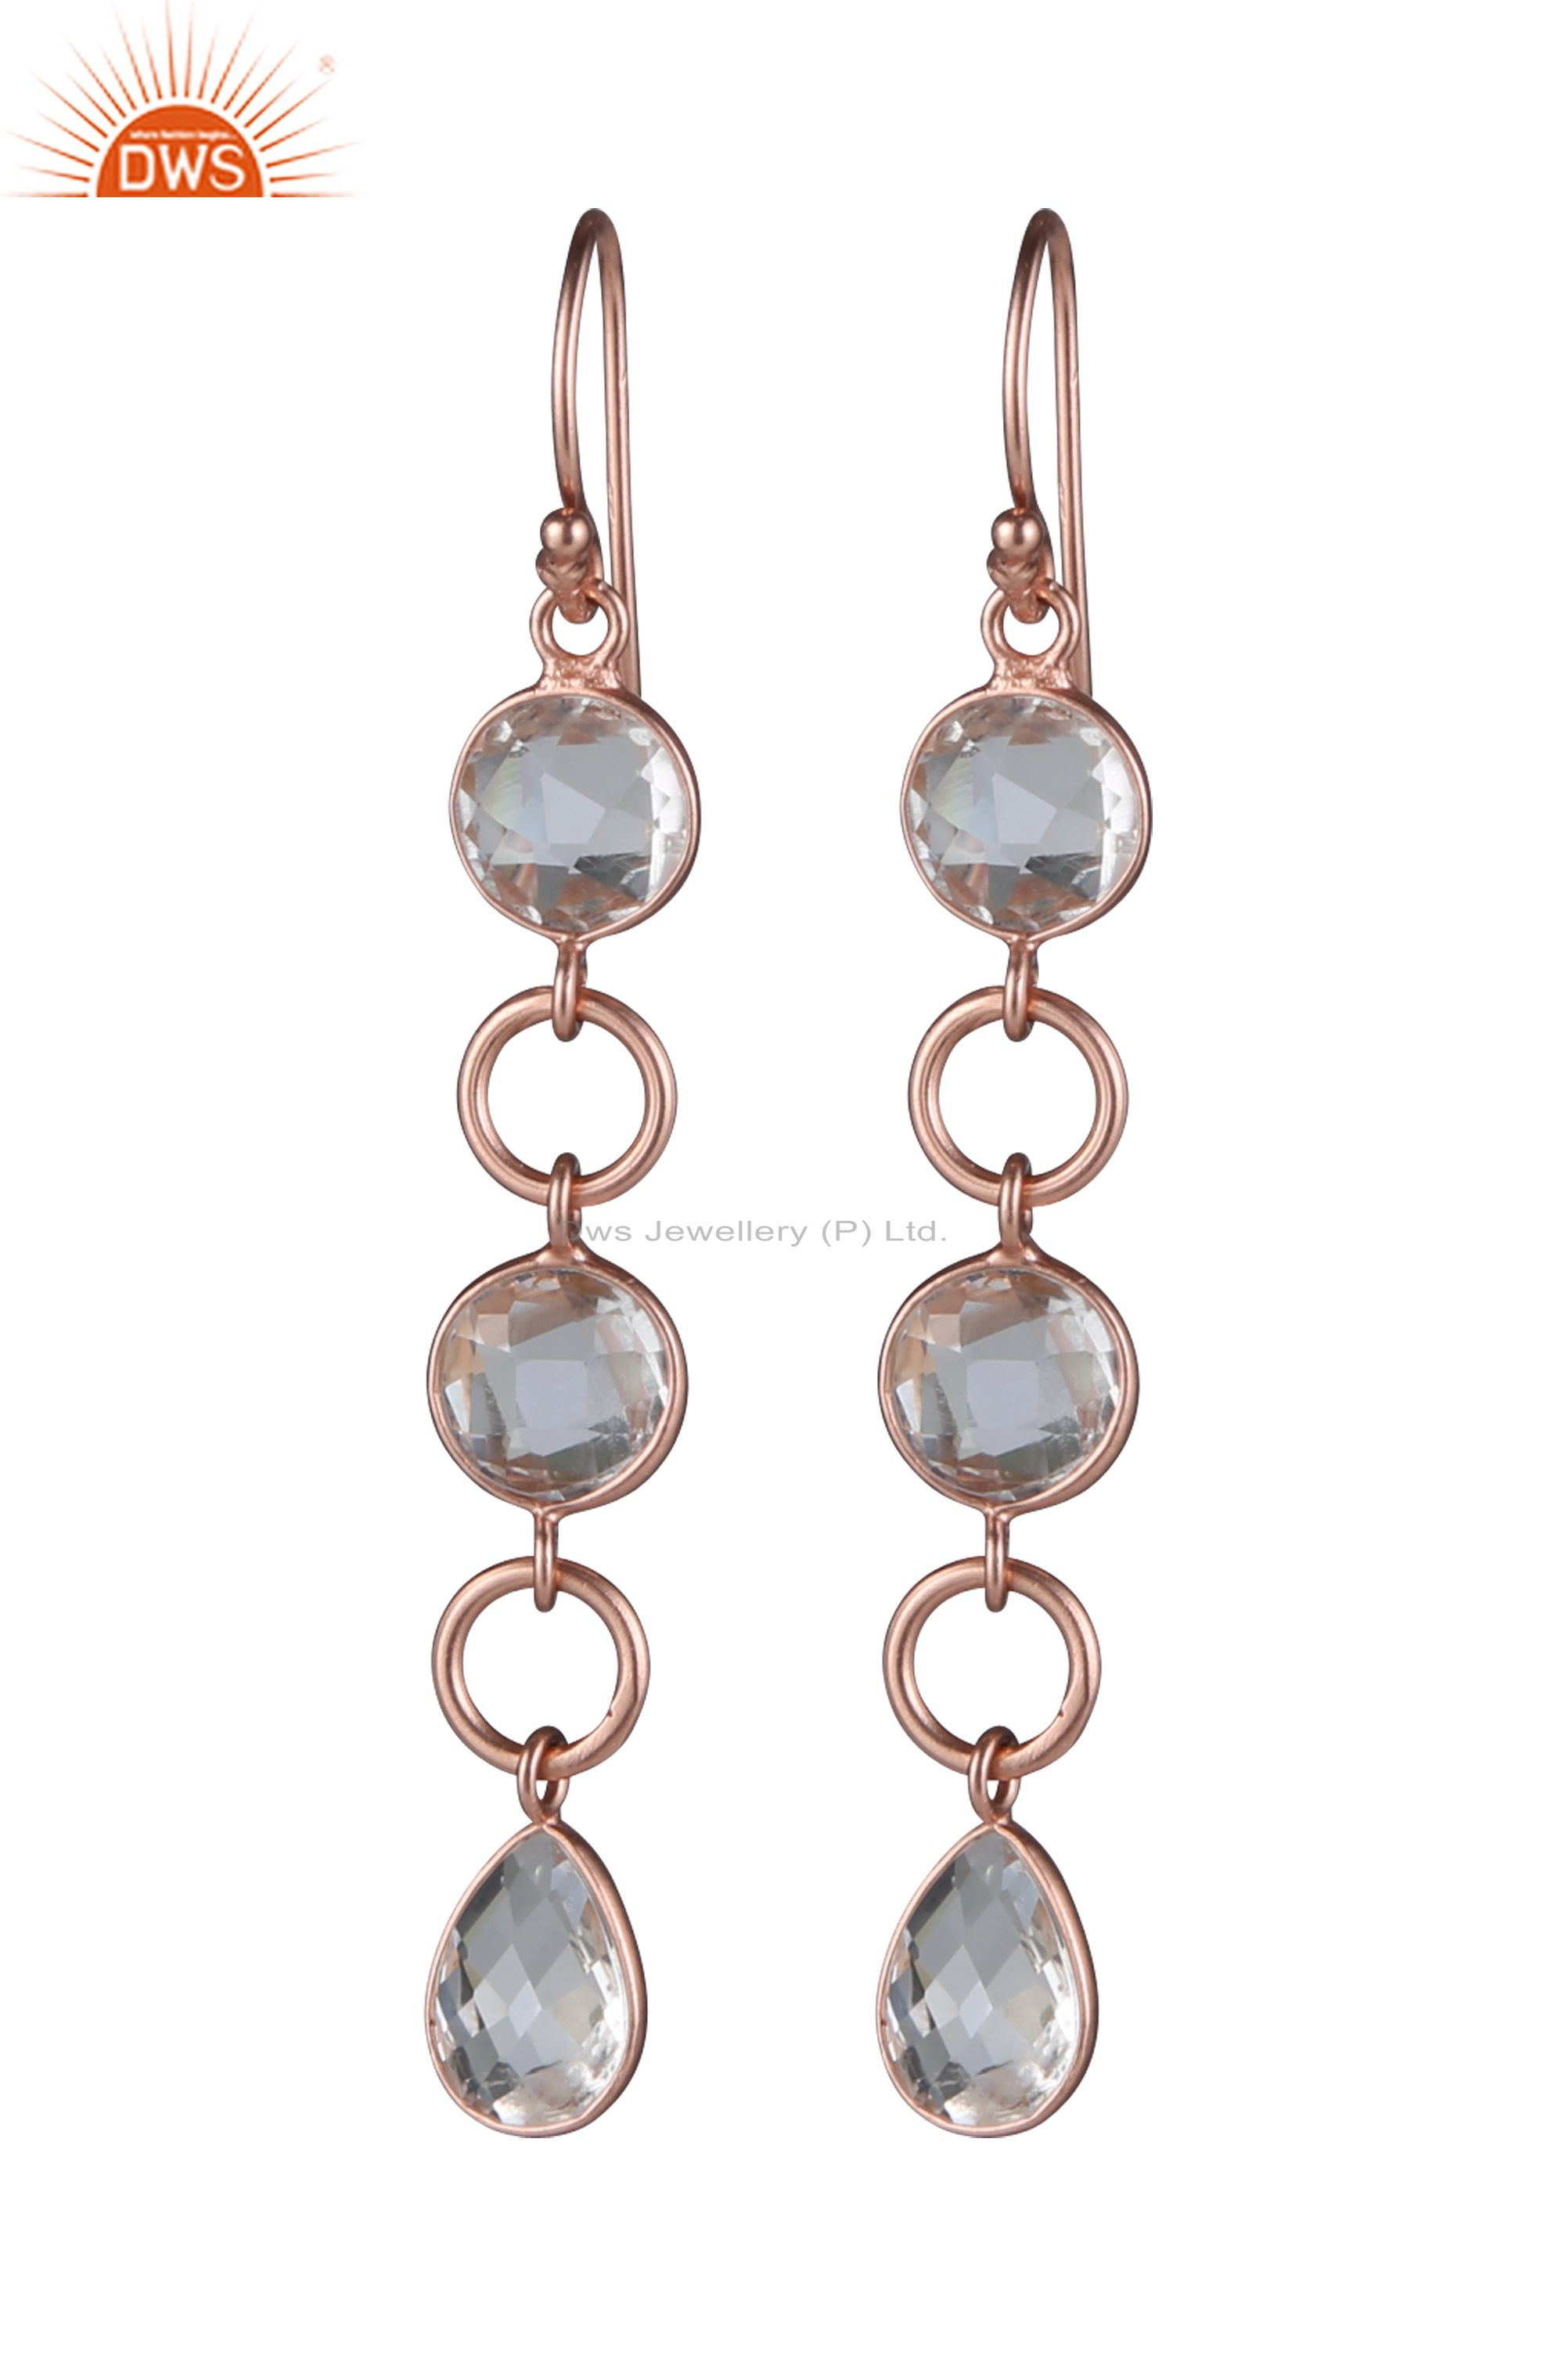 18K Rose Gold Plated Sterling Silver Crystal Quartz Gemstone Dangle Earrings